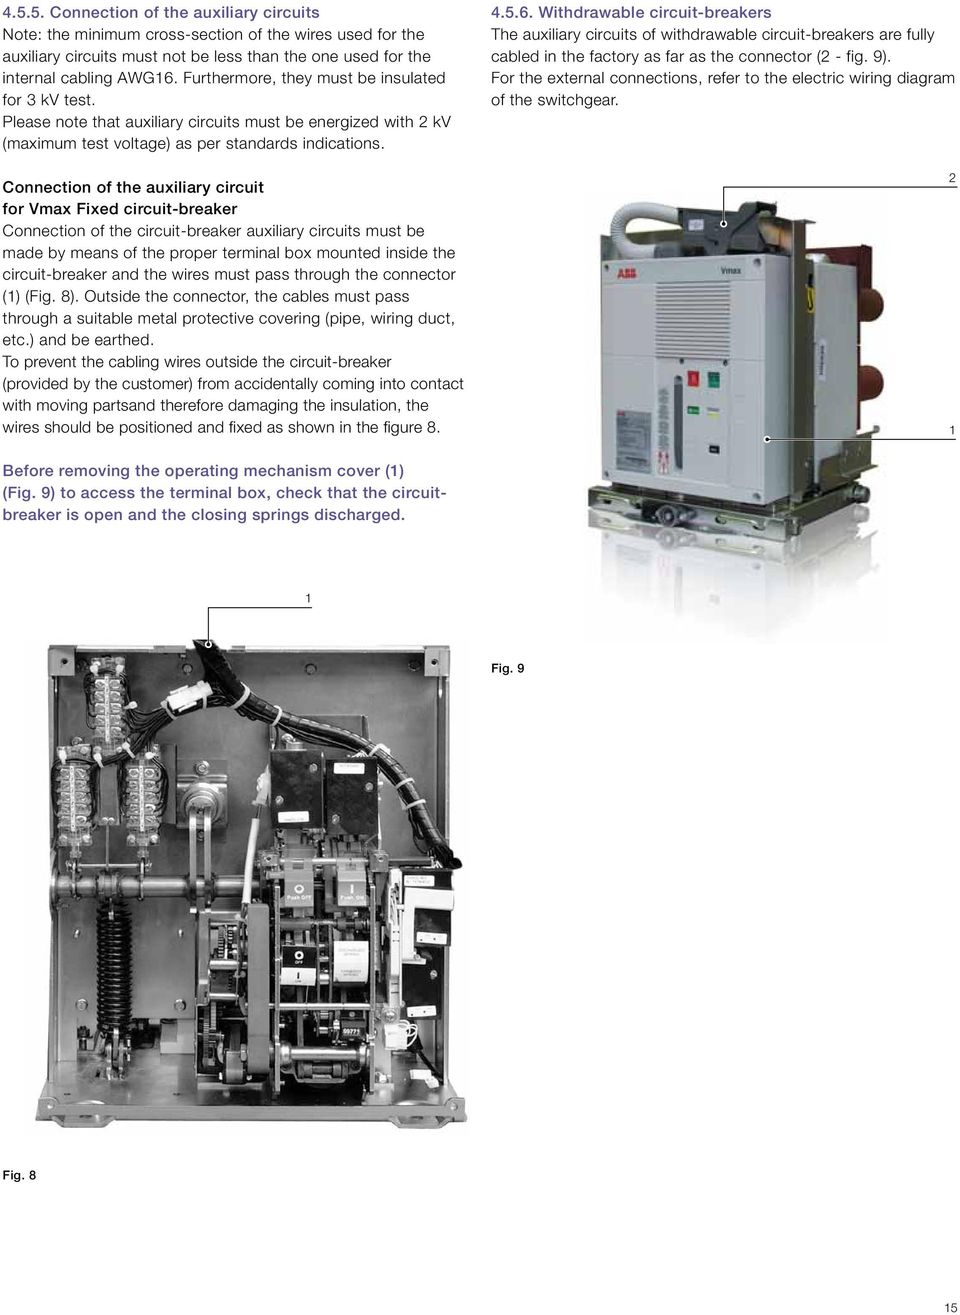 hight resolution of connection of the auxiliary circuit for vmax fixed circuit breaker connection of the circuit